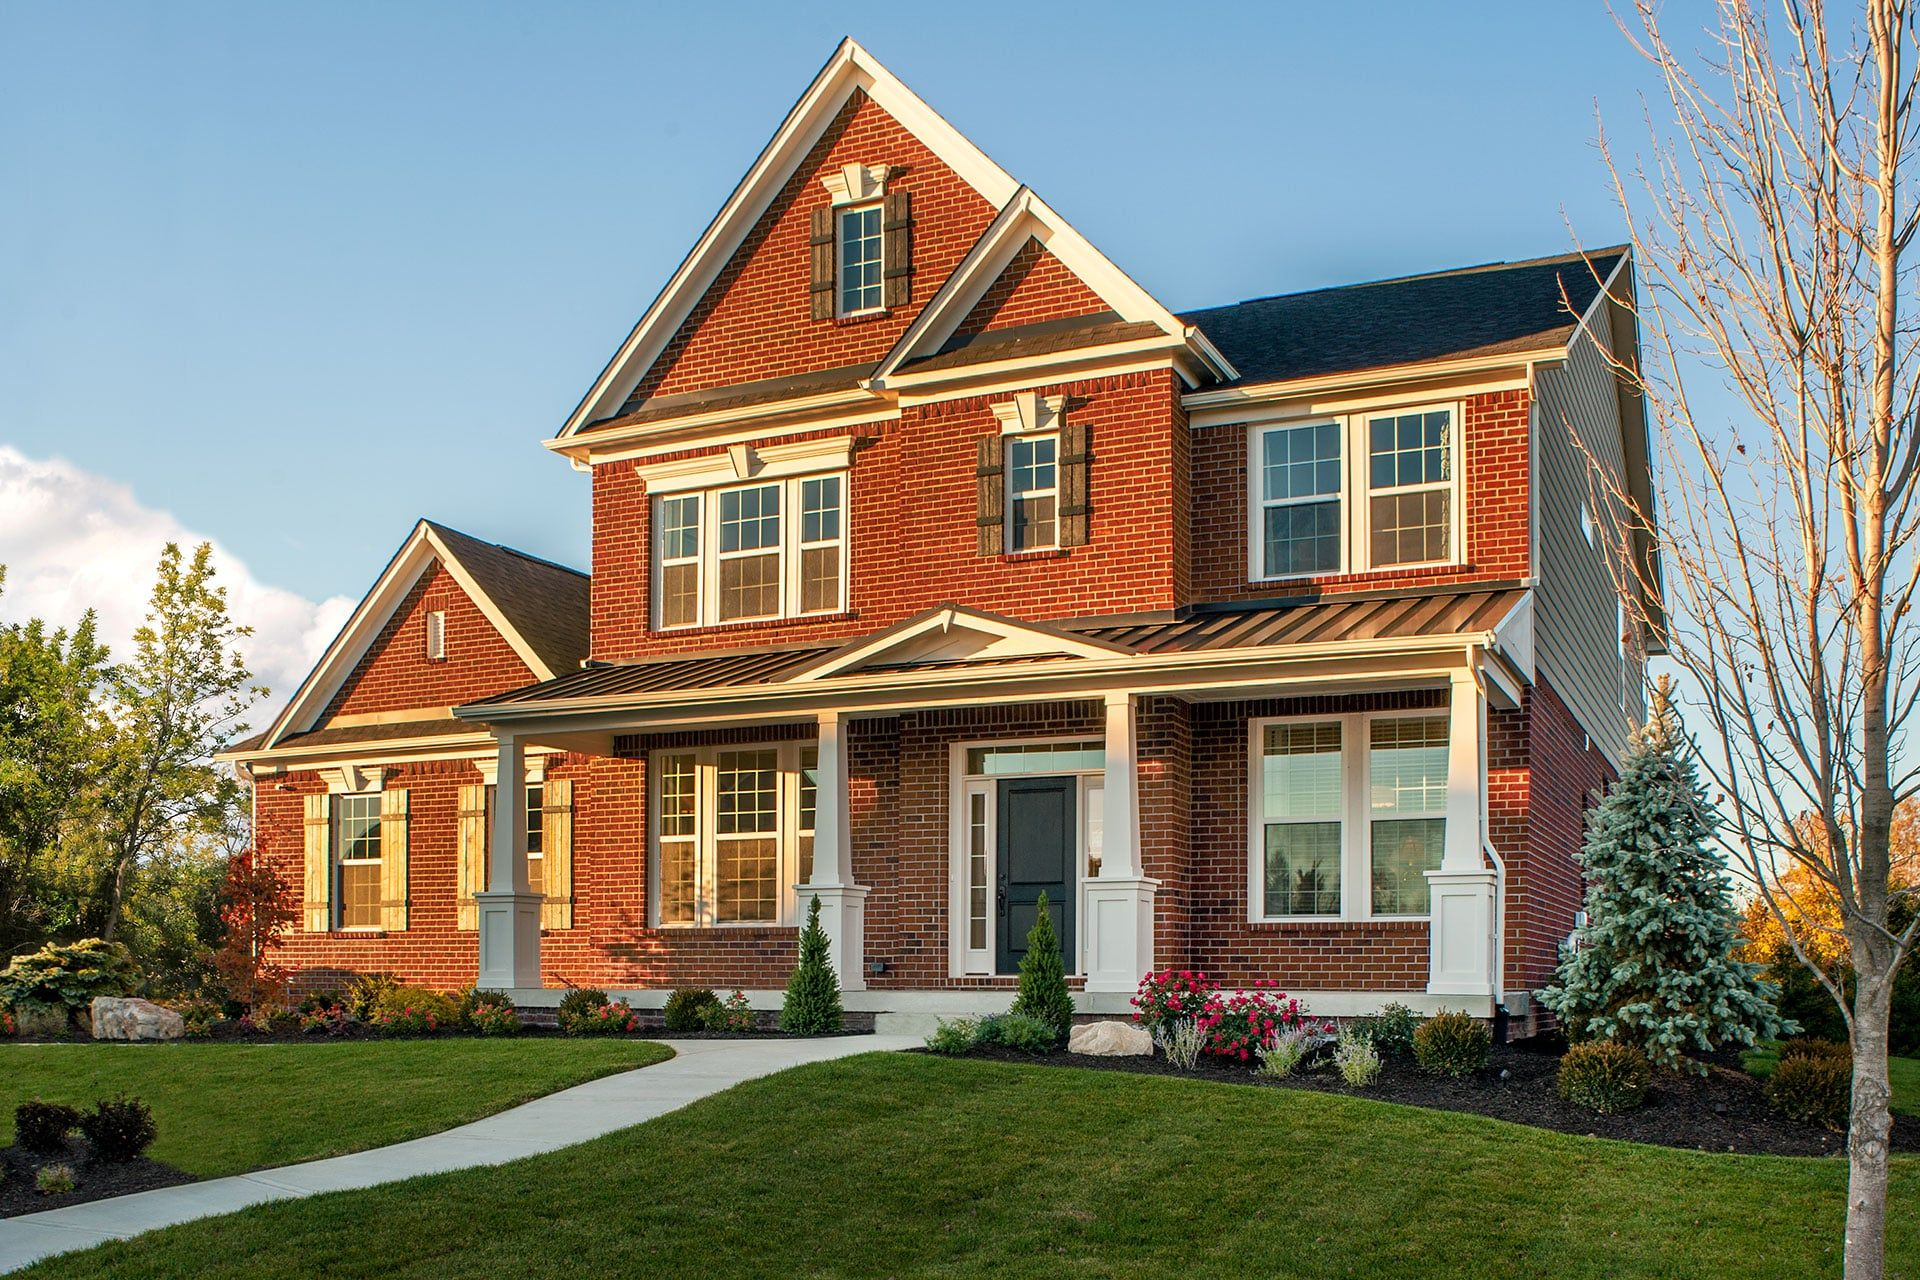 ICYMI: House Front Elevation Design Software Online